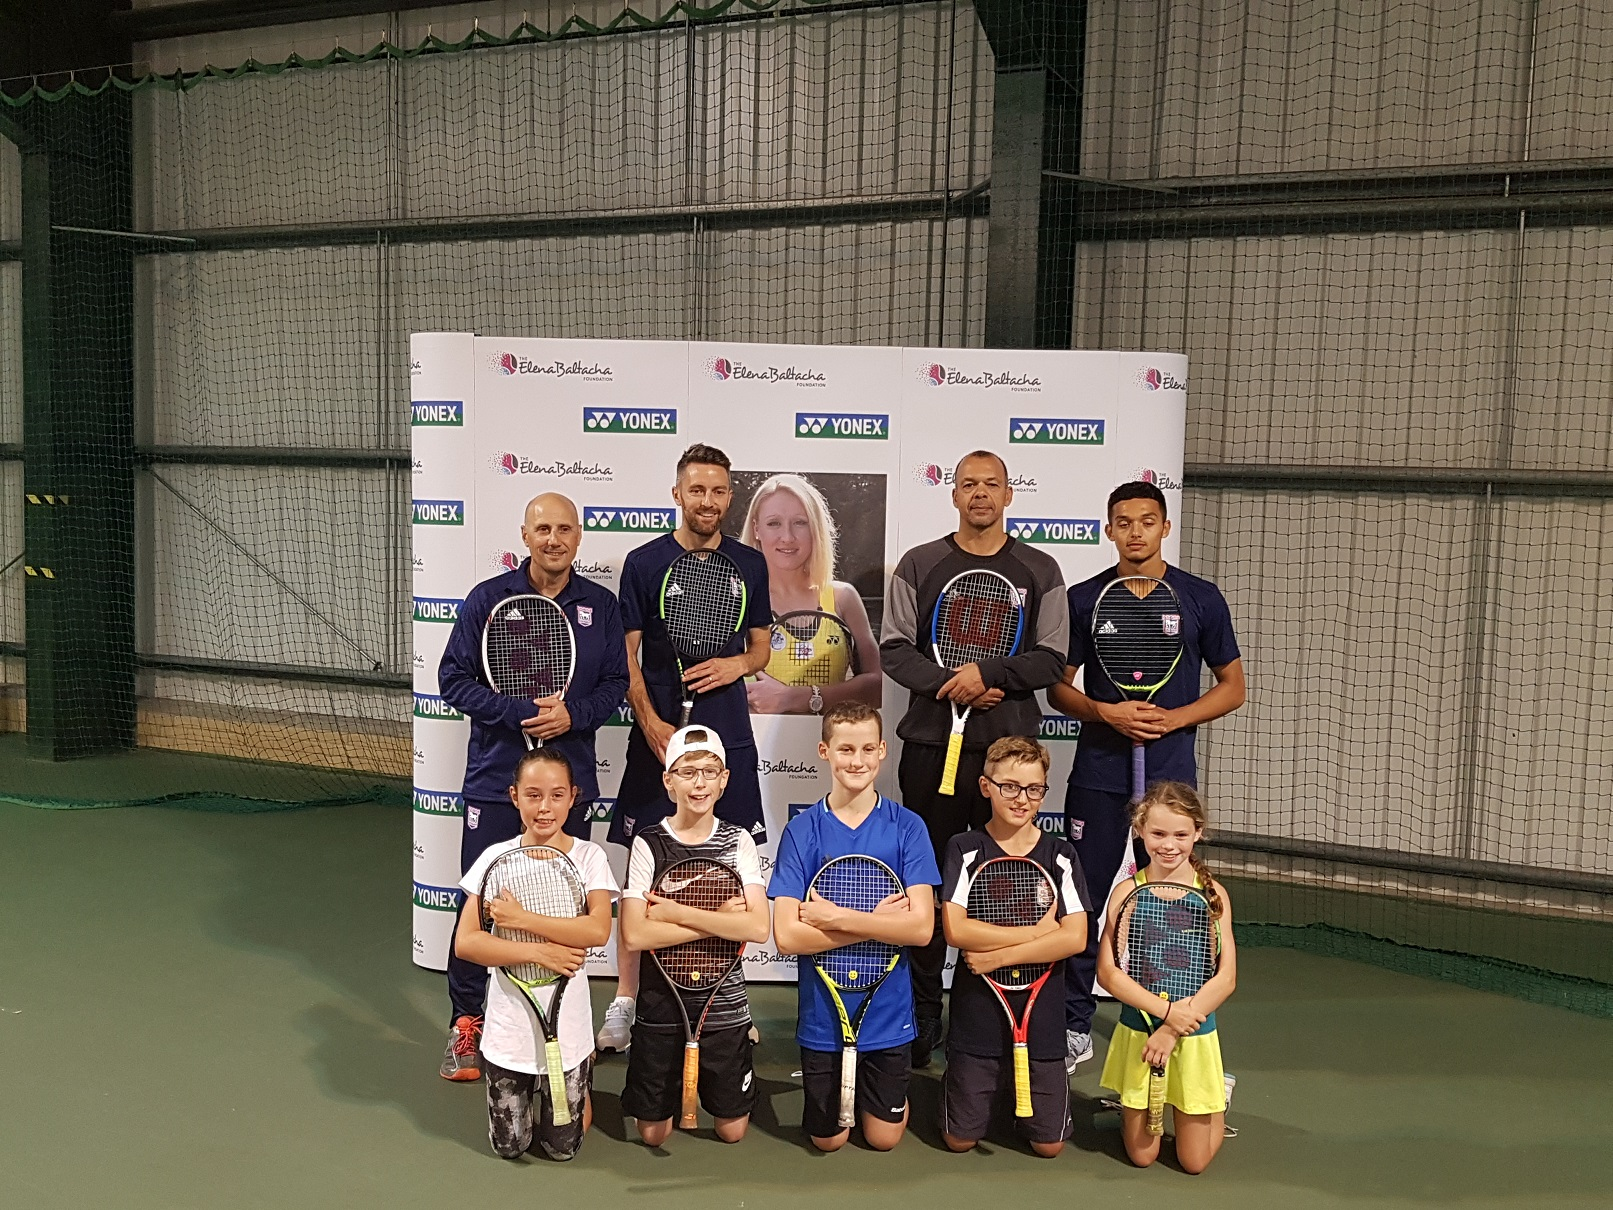 Ipswich Town FC players Cole Skuse and Andre Dozzell take part in Elena Baltacha Foundation training sessions.